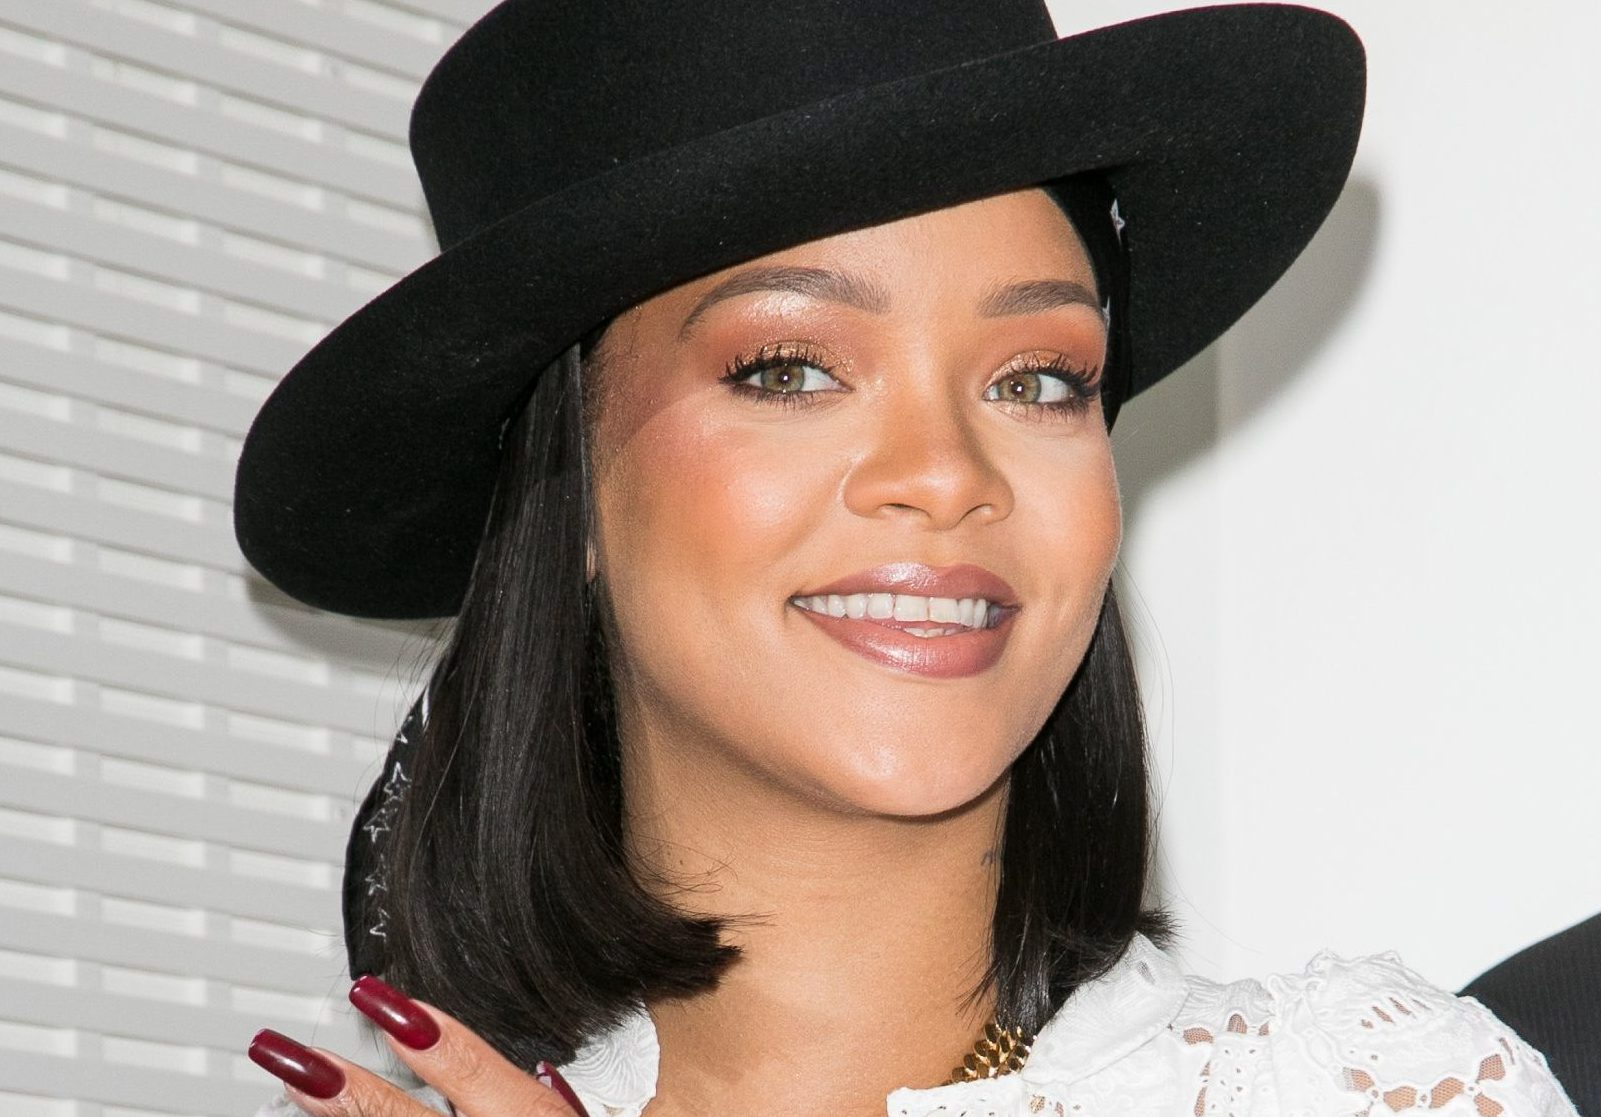 Why Rihanna's new man means so much to us